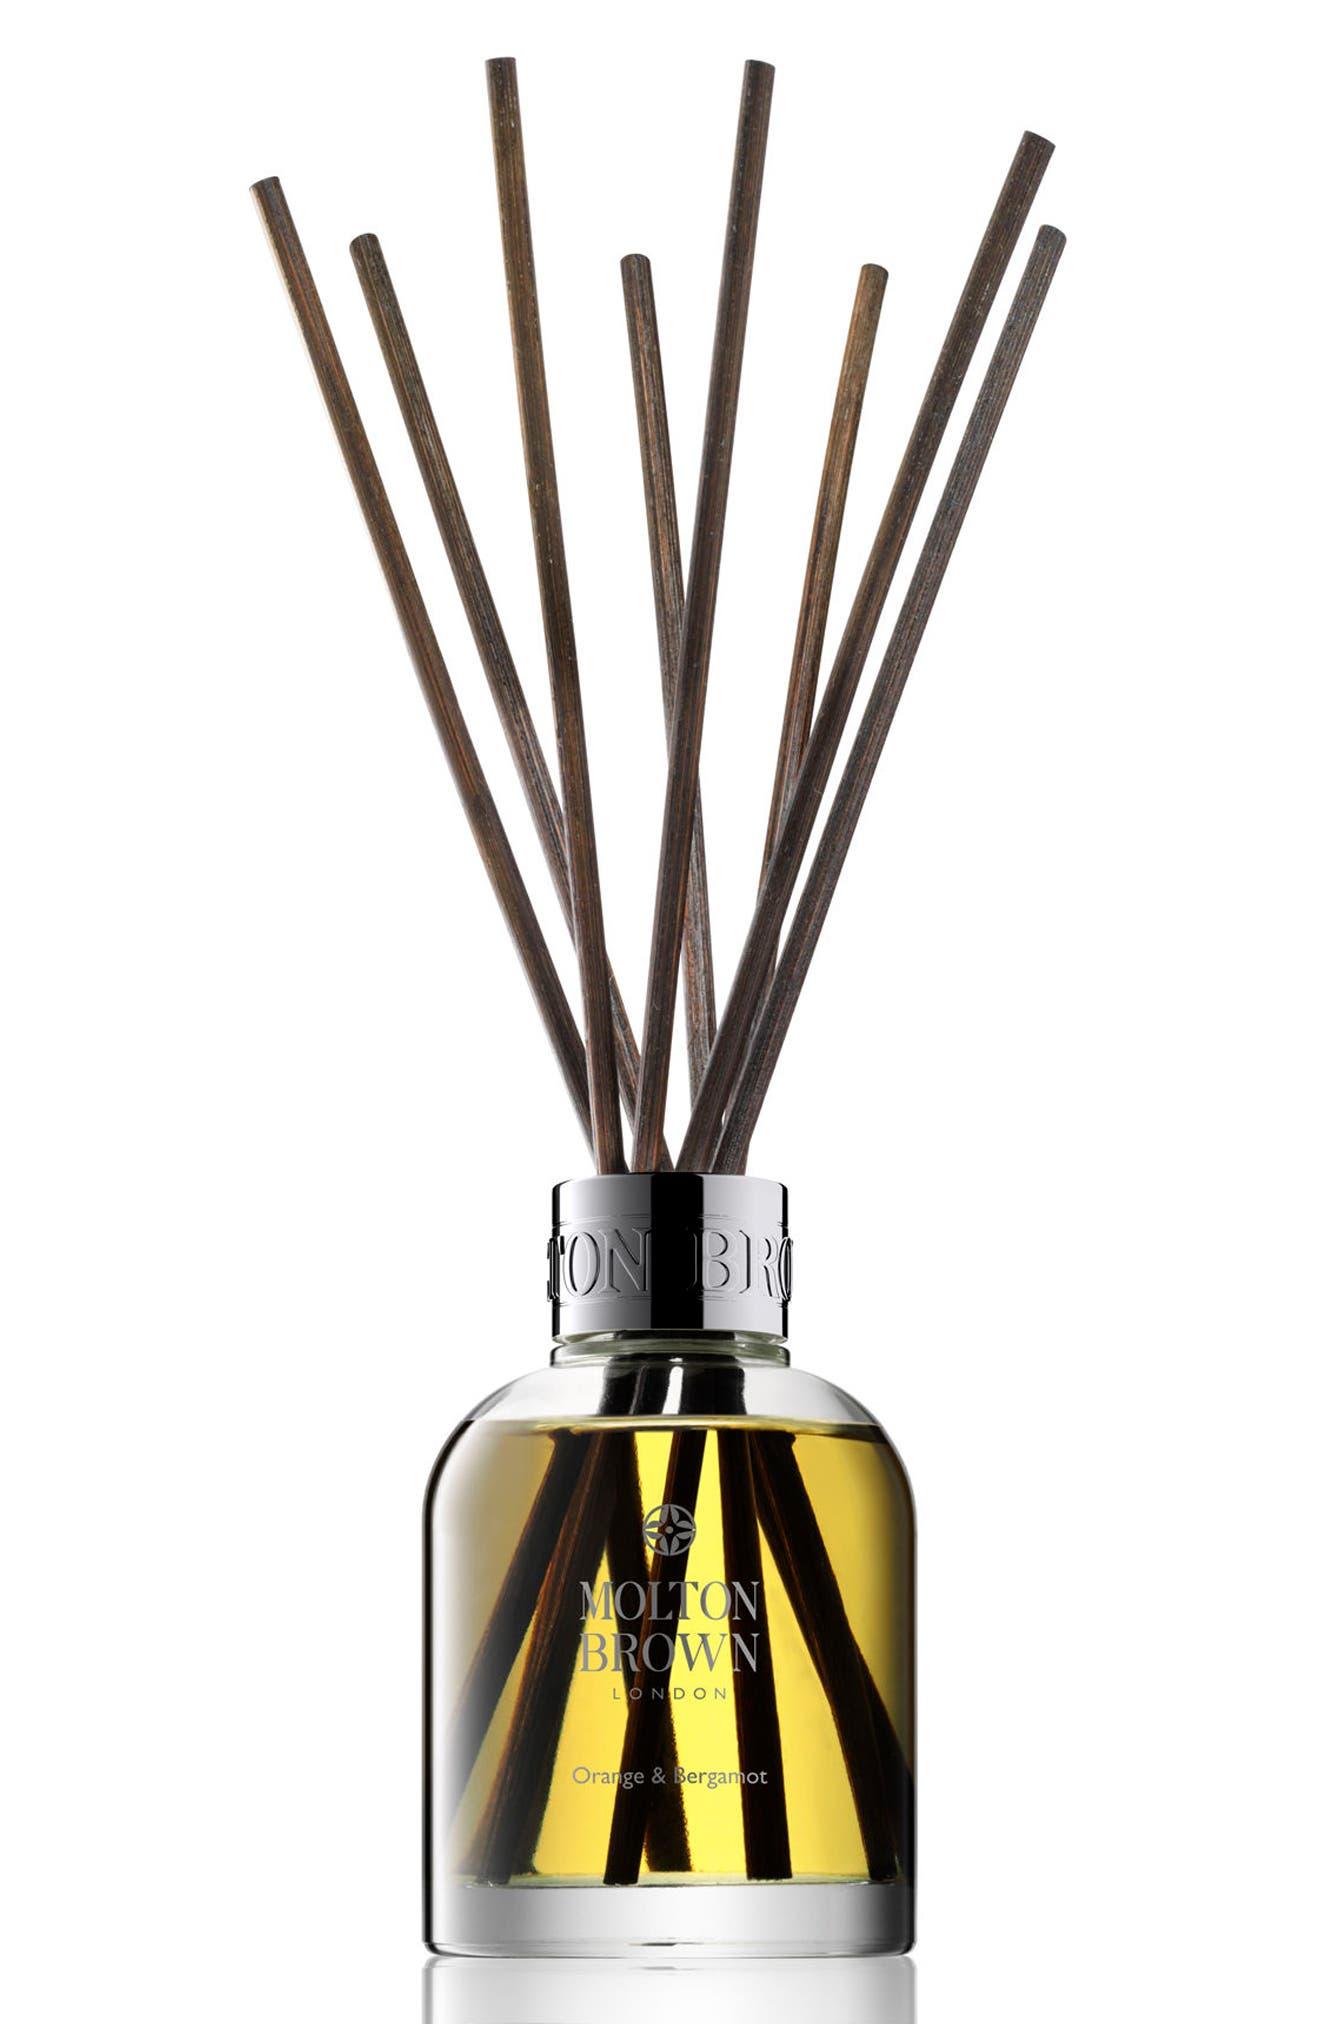 'Pink Pepperpod' Aroma Reeds,                         Main,                         color, Orange And Bergamot Aroma Rds